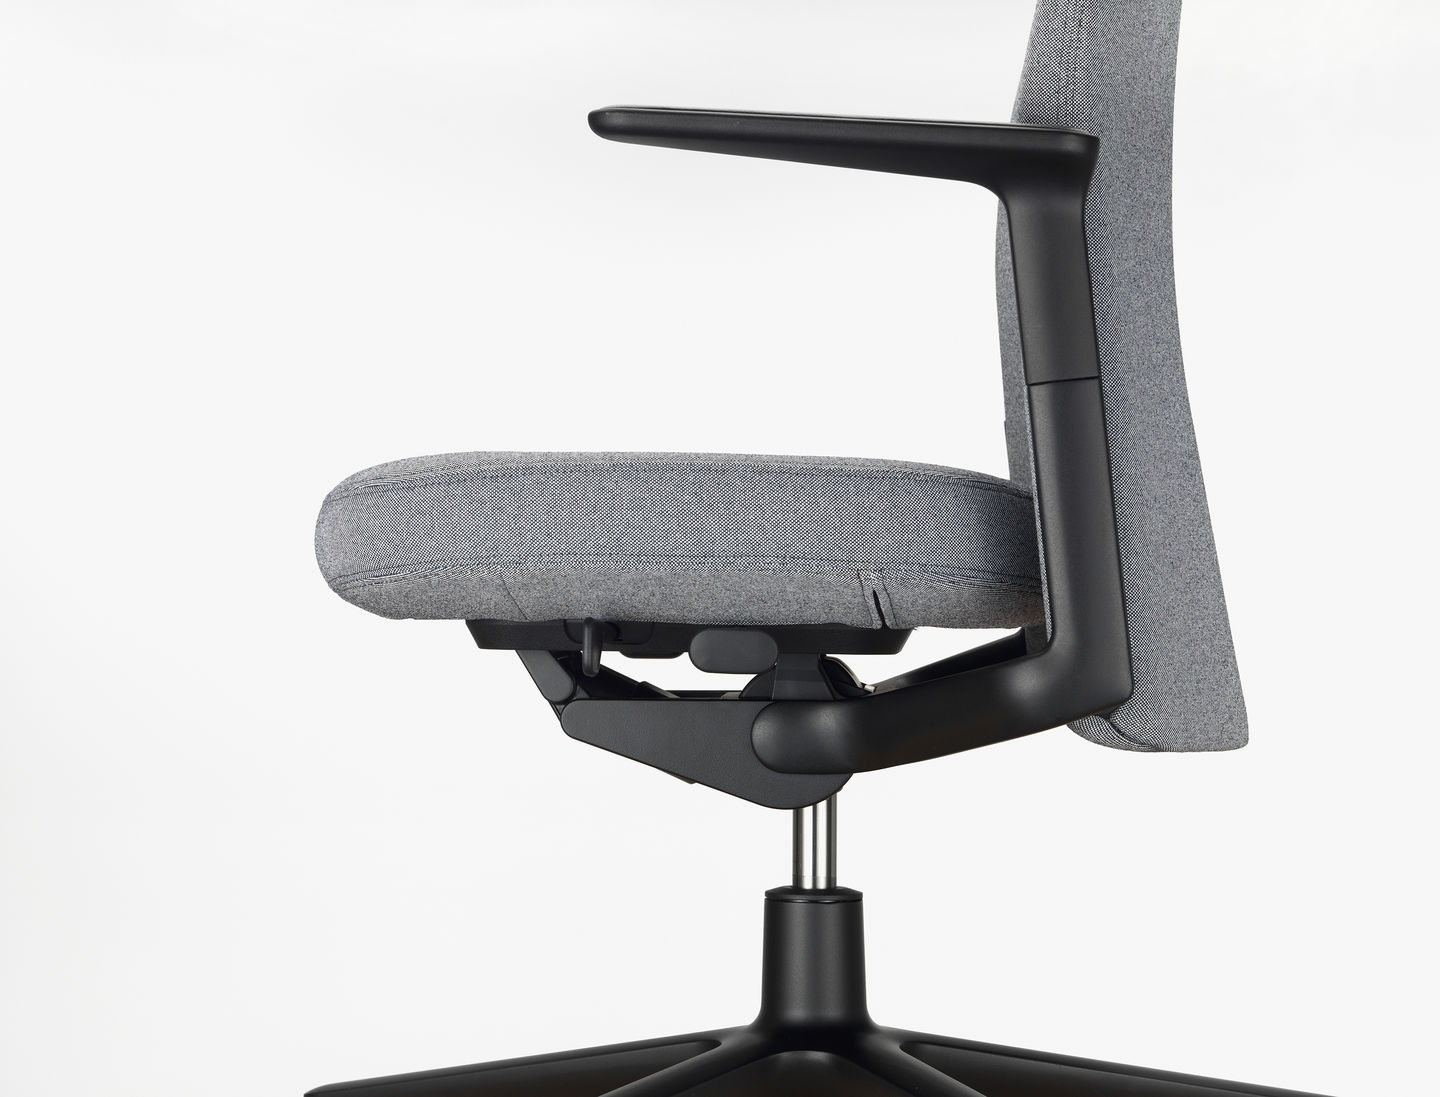 Although Not Readily Visible, The Pacific Chair Offers All The  Sophisticated Functions Necessary For Ergonomic Seating. The  Height Adjustable Back And ...